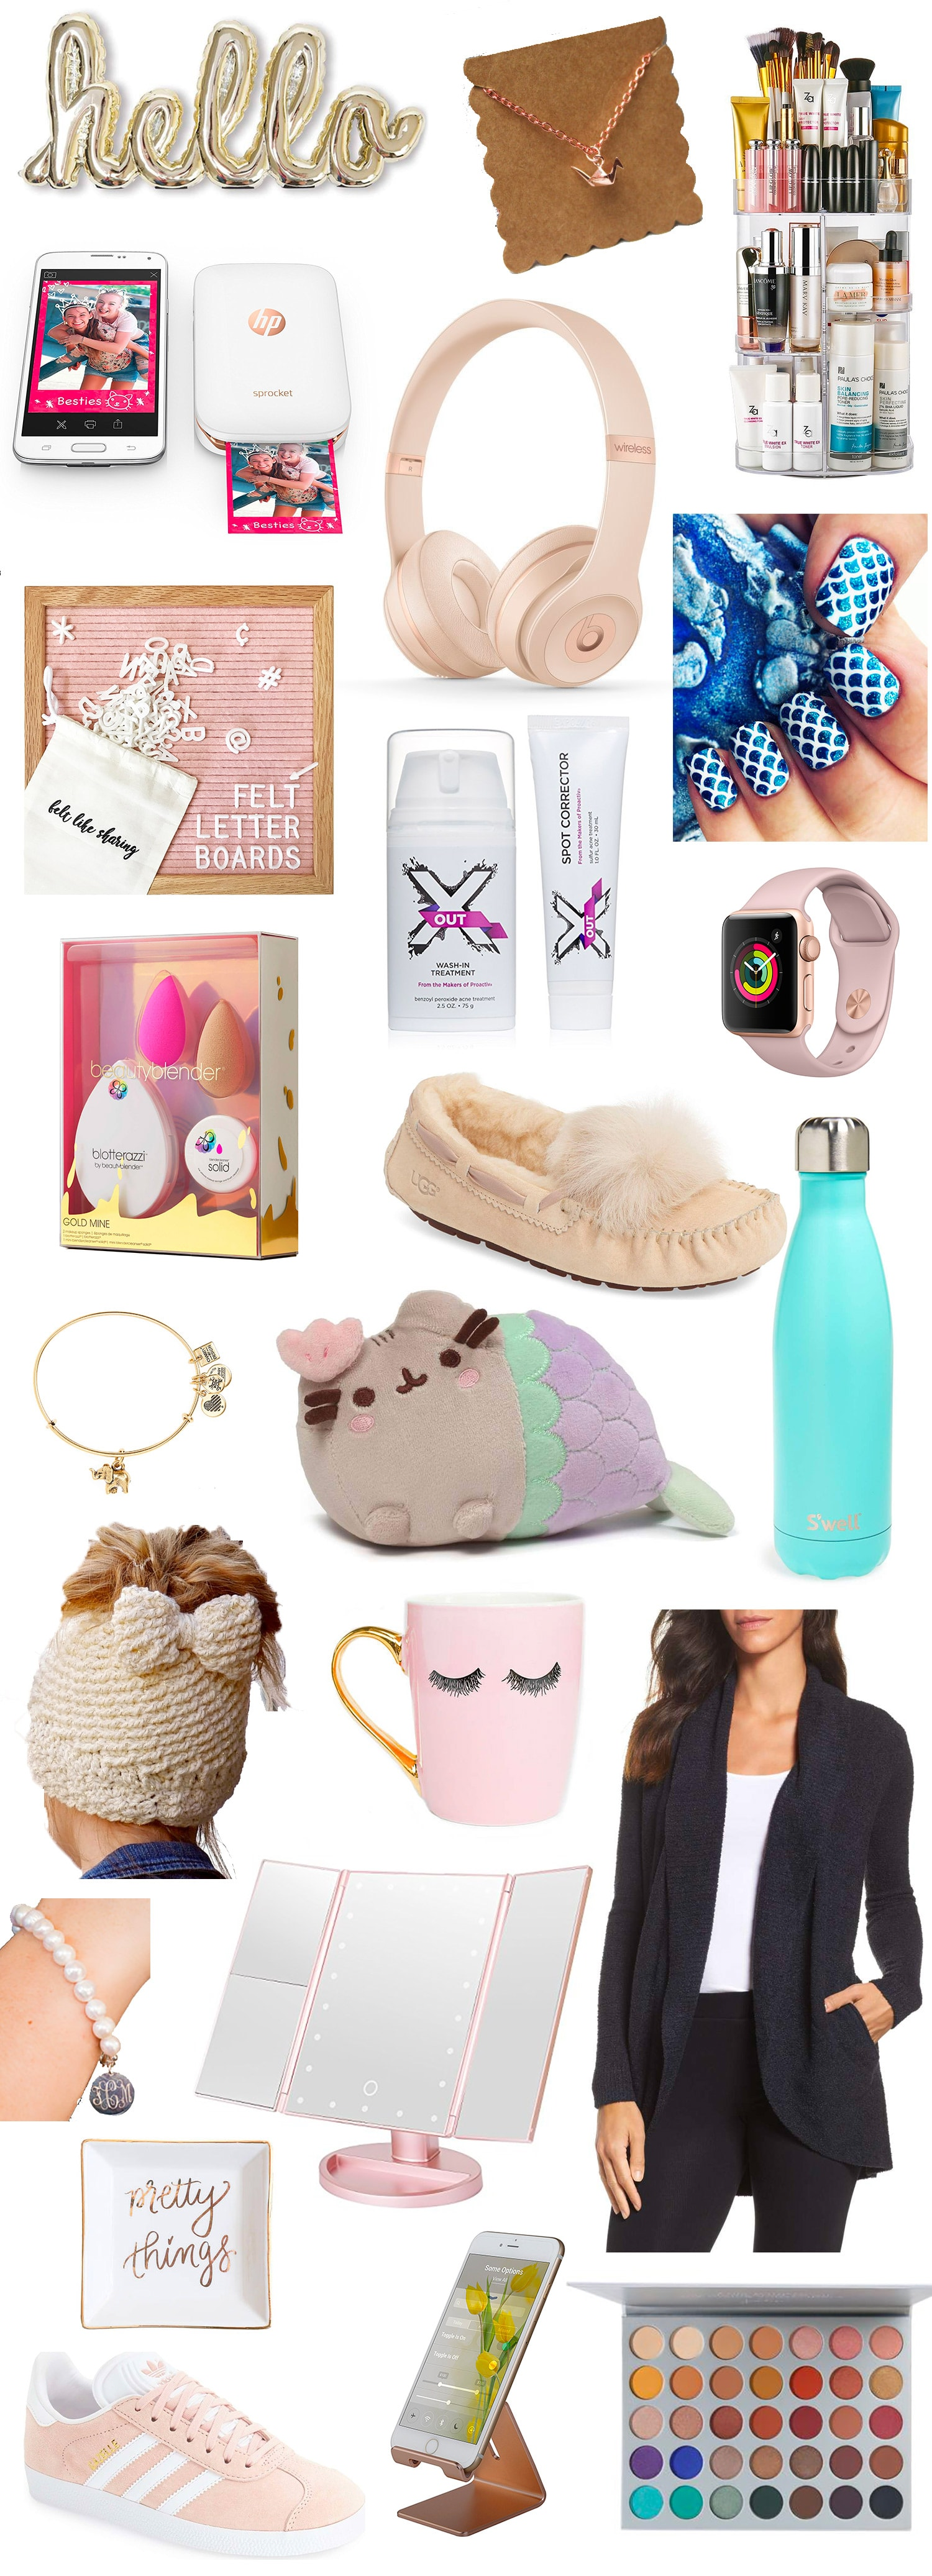 top gifts for teens this christmas ashley brooke nicholas